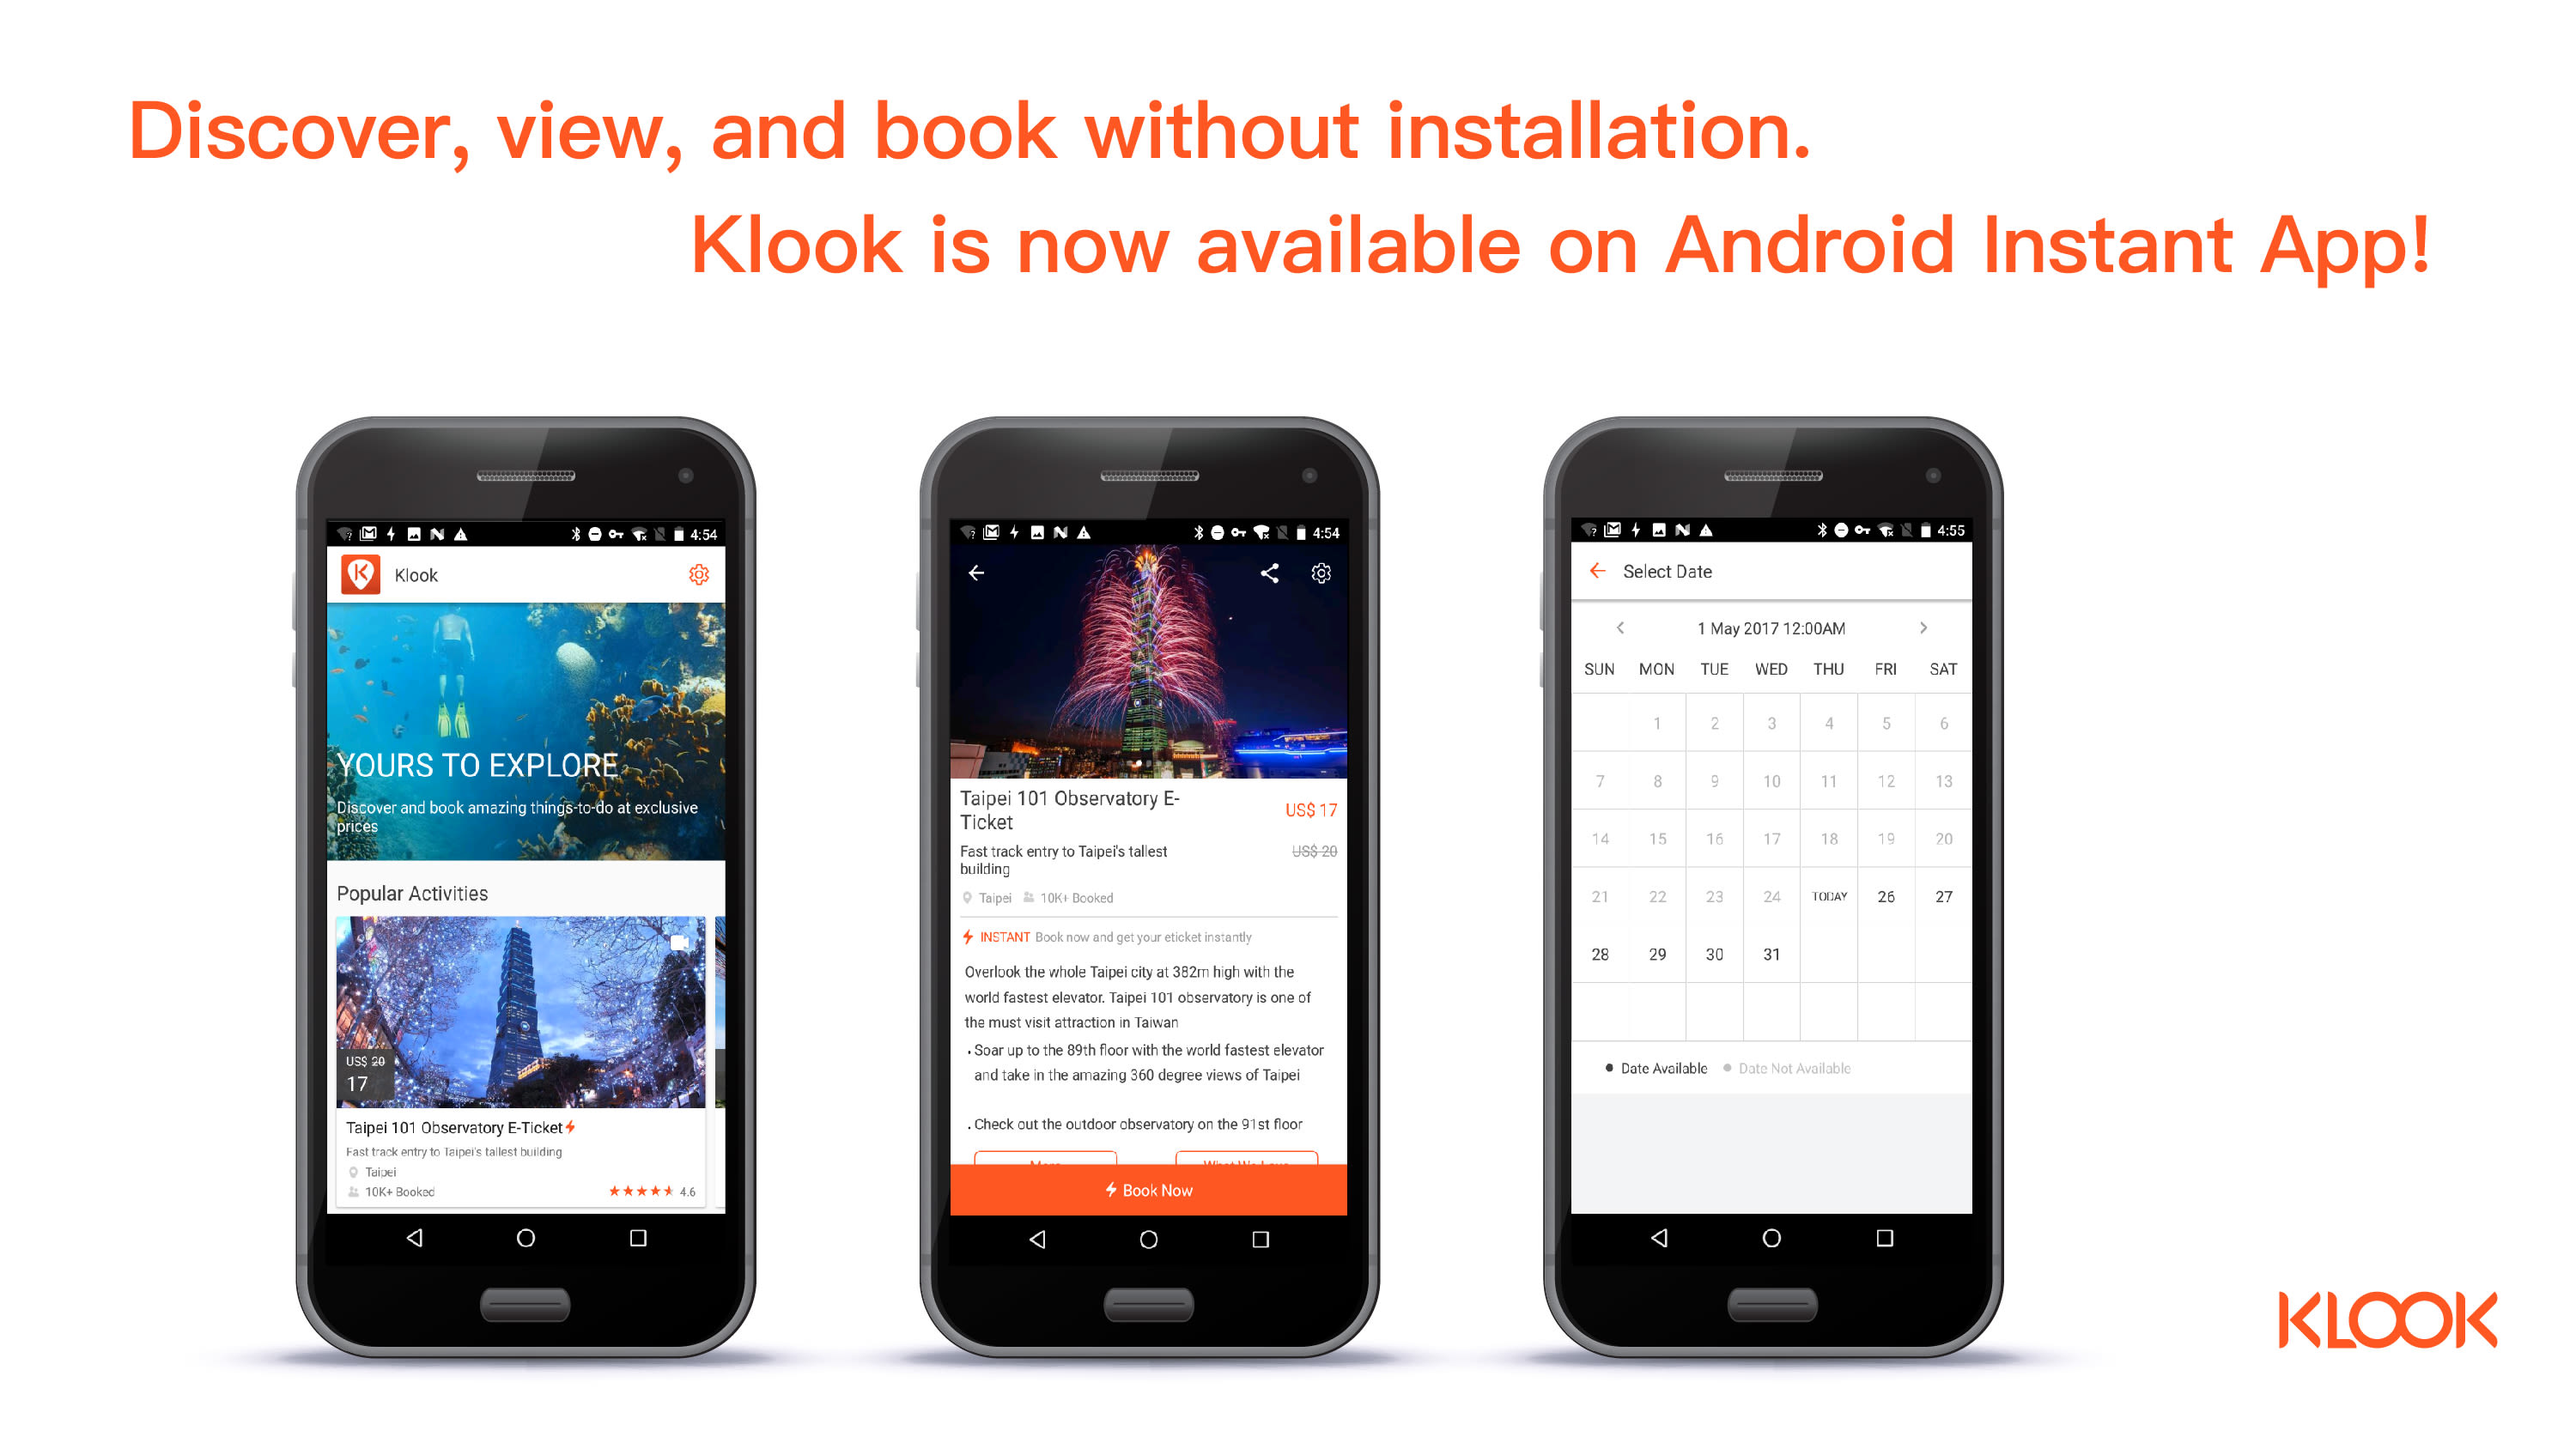 Klook Android Instant App Launch Visual